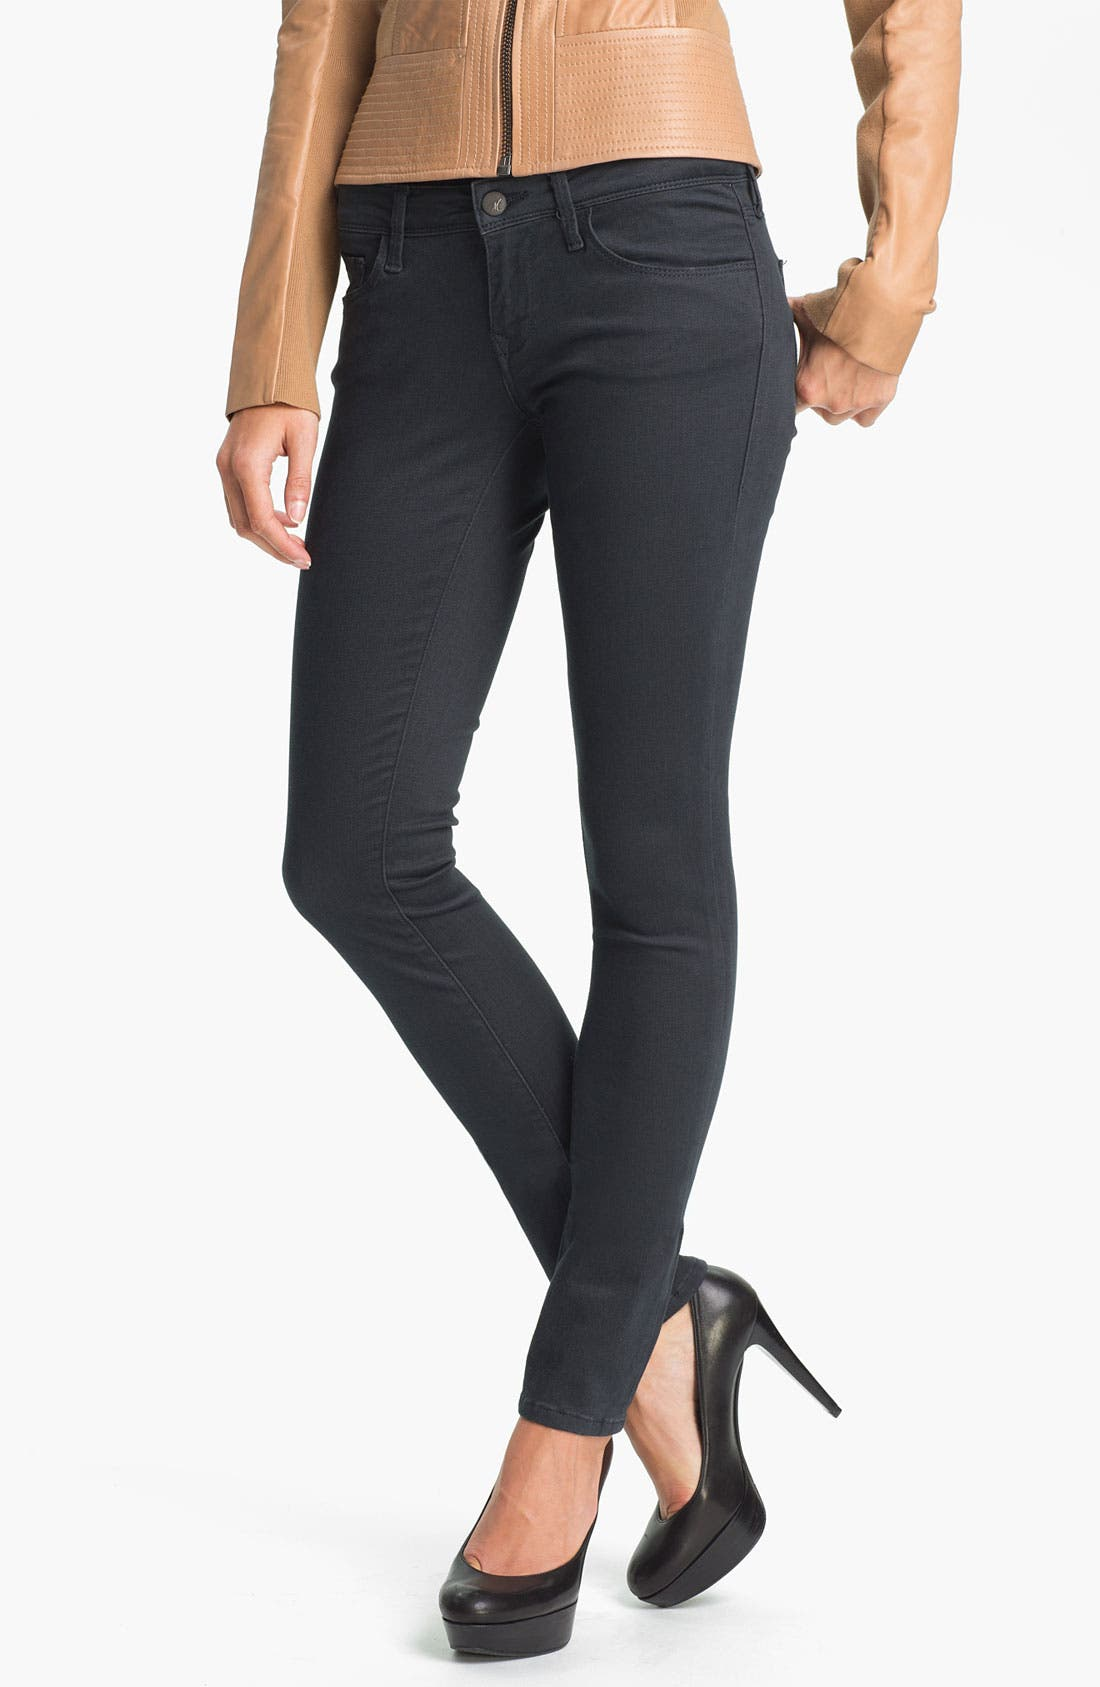 Main Image - Mavi Jeans 'Serena' Low Rise Skinny  Jeans (Sueded Granite) (Online Exclusive)